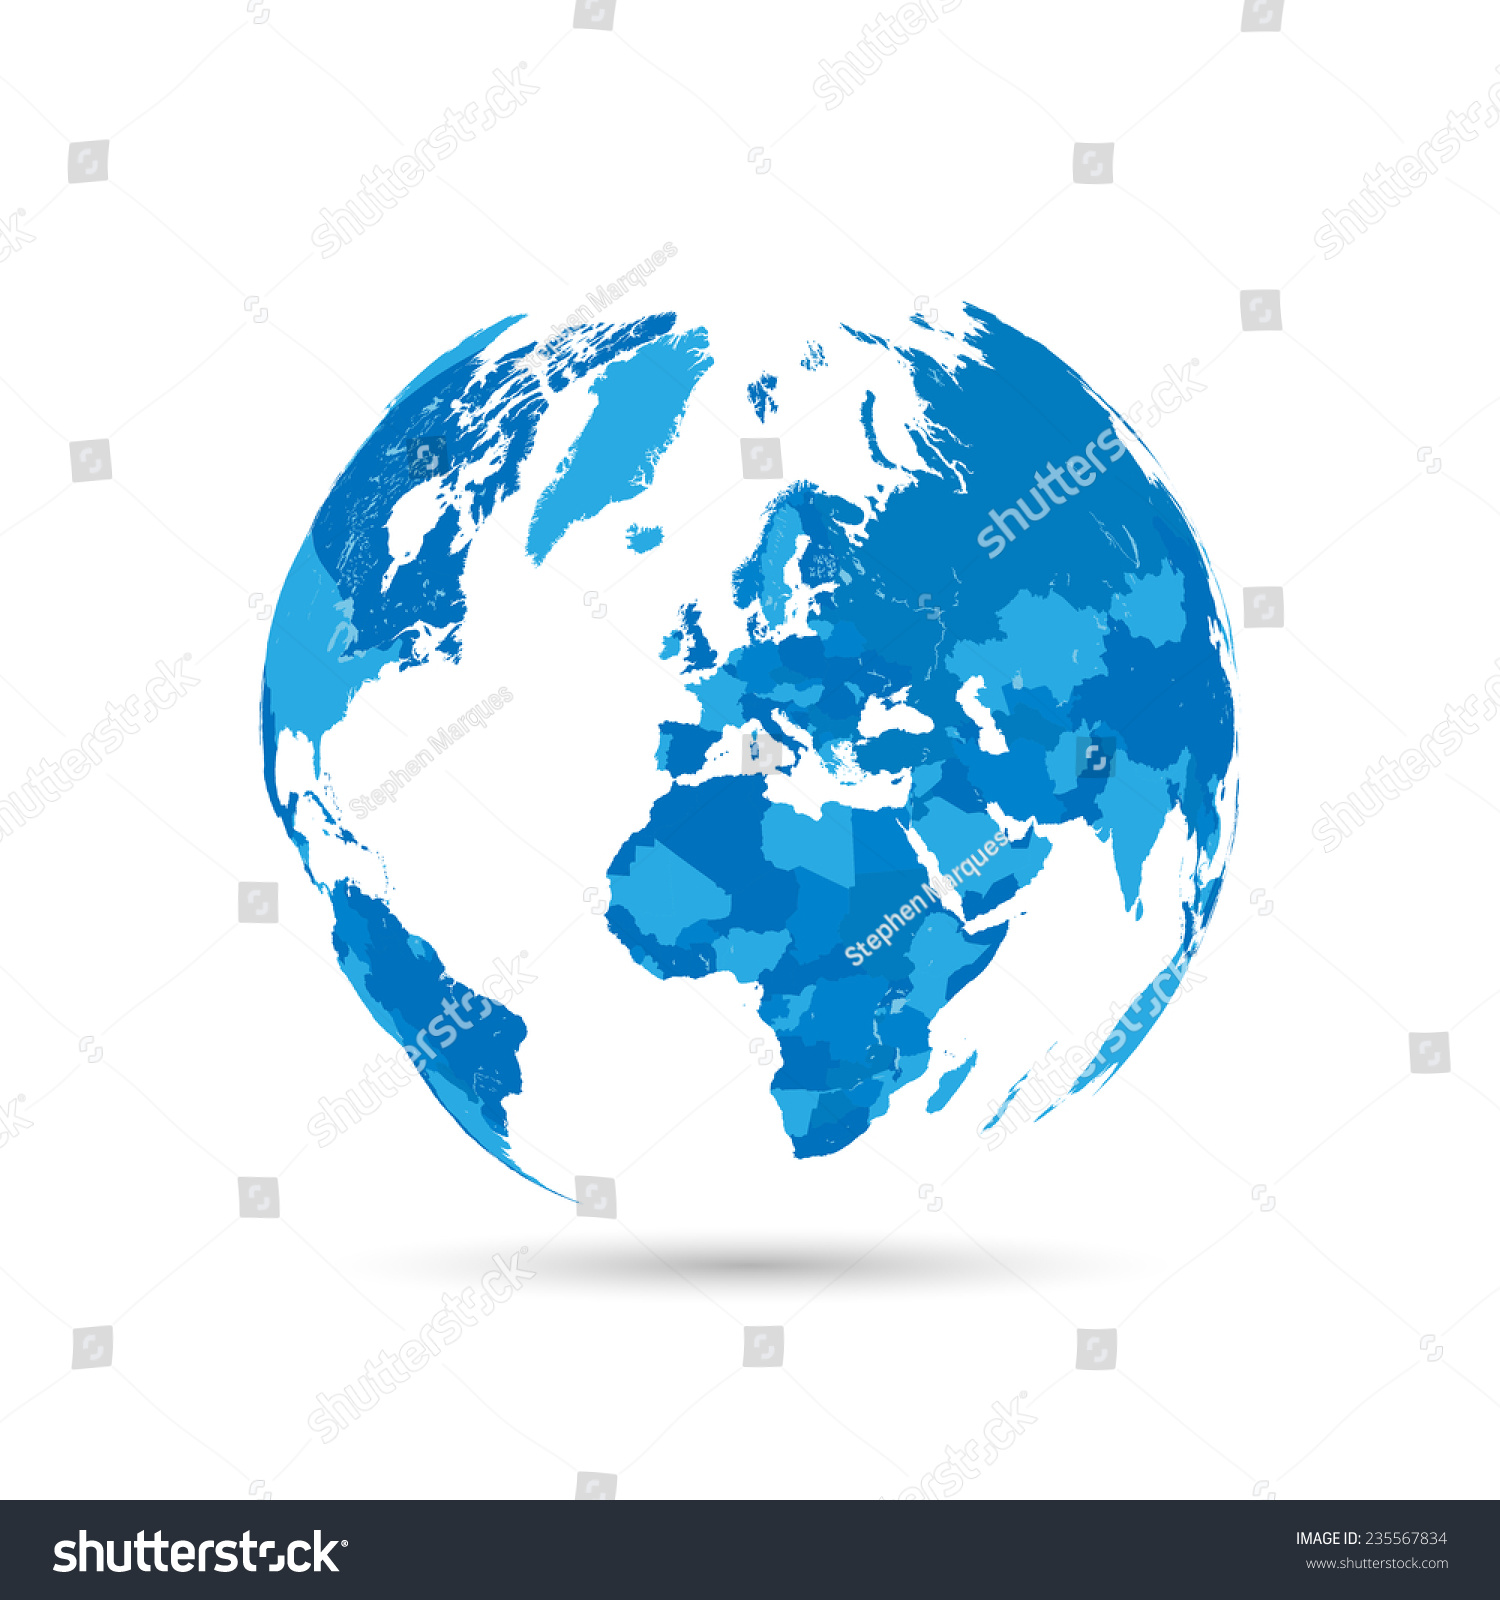 World Map Countries Vector Illustration Globe Stock Vector ... on globe map philippines, globe map asia, globe map norway, globe map europe, globe map world, globe map states, globe map austria, globe map italy, globe map finland, globe map india, globe map art, globe map africa,